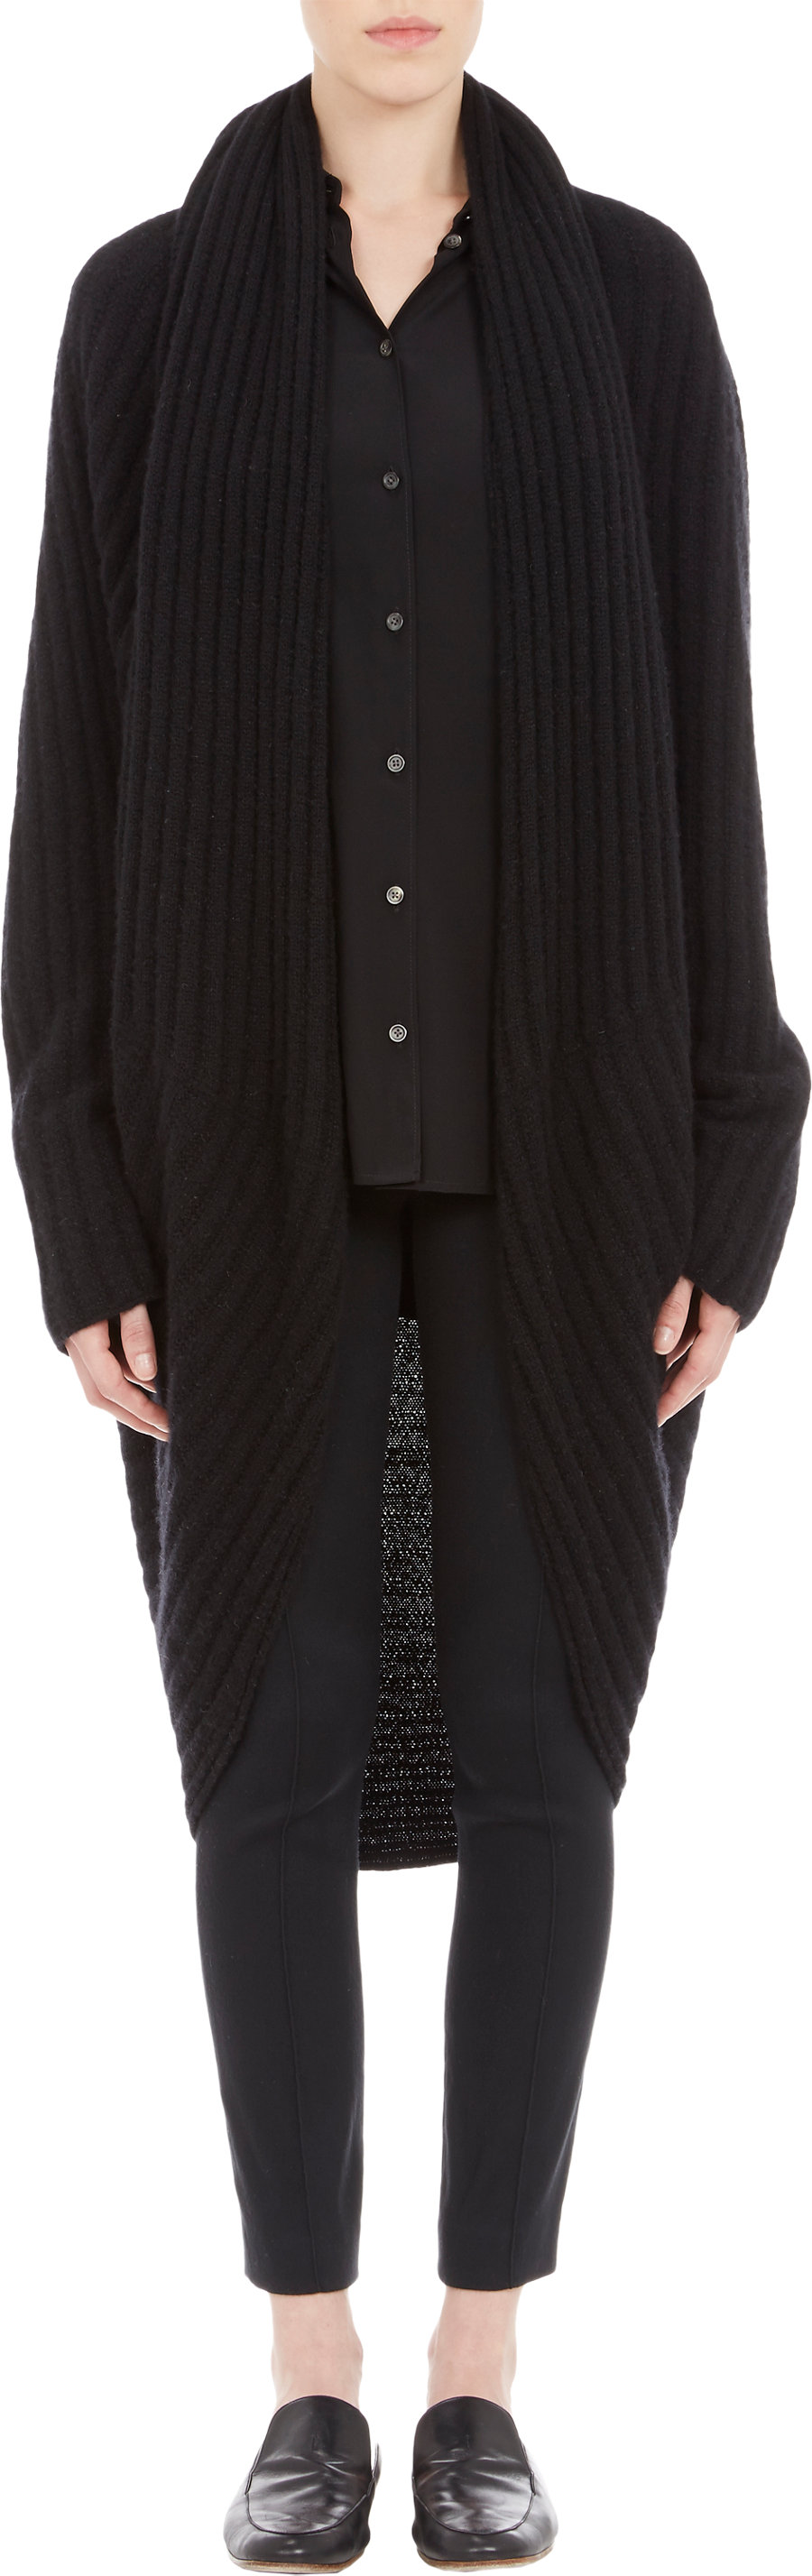 Olivia Pope extra long sweater!!! I meed this in my life!!!!! The ...